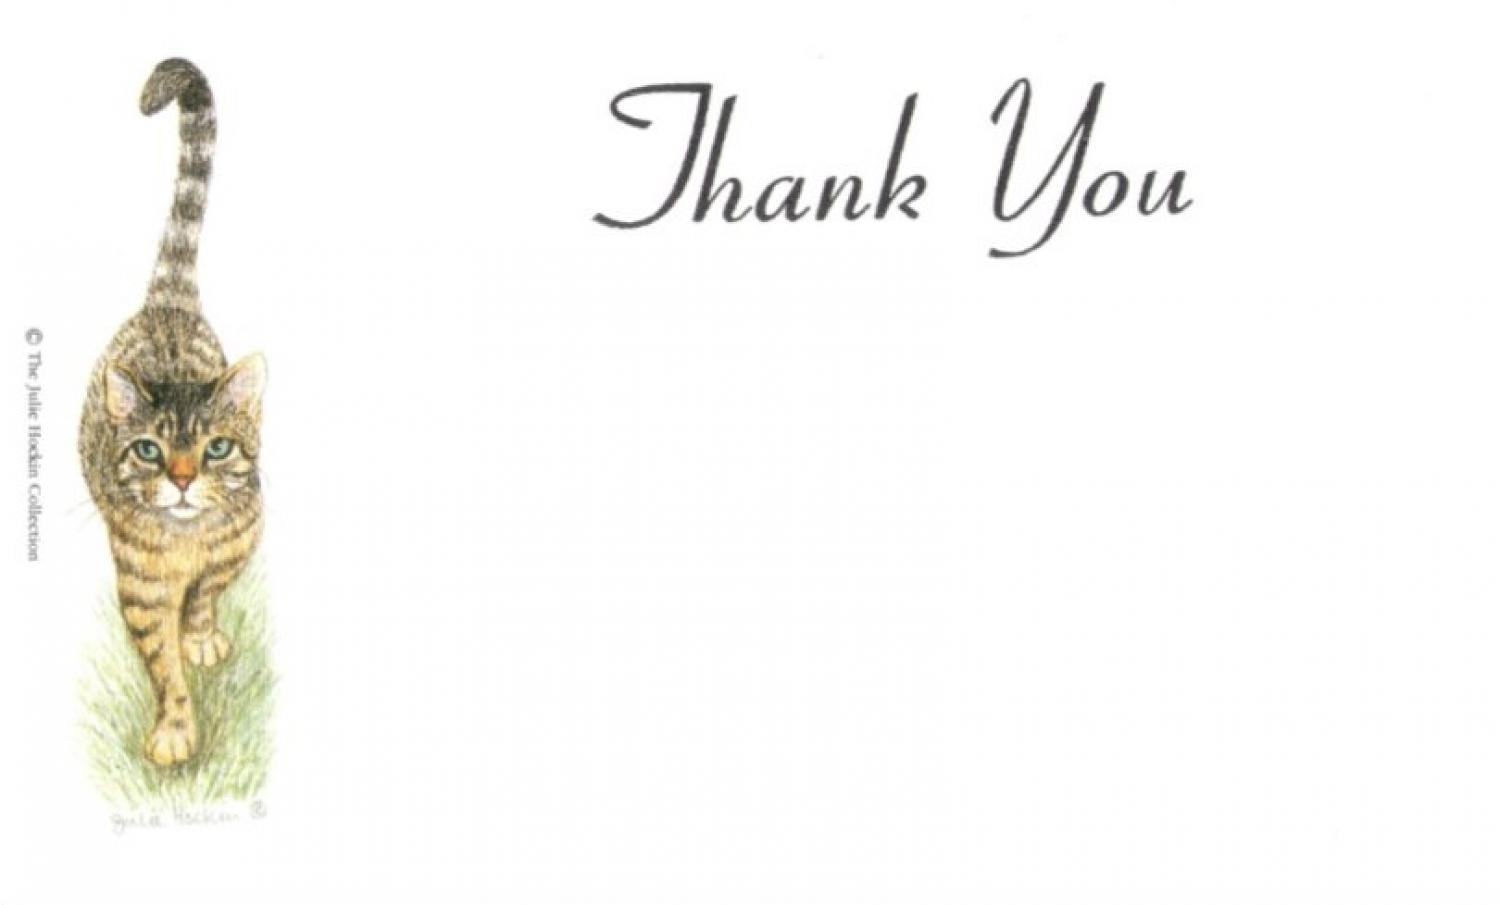 Thank You Cards - Tabby Cat